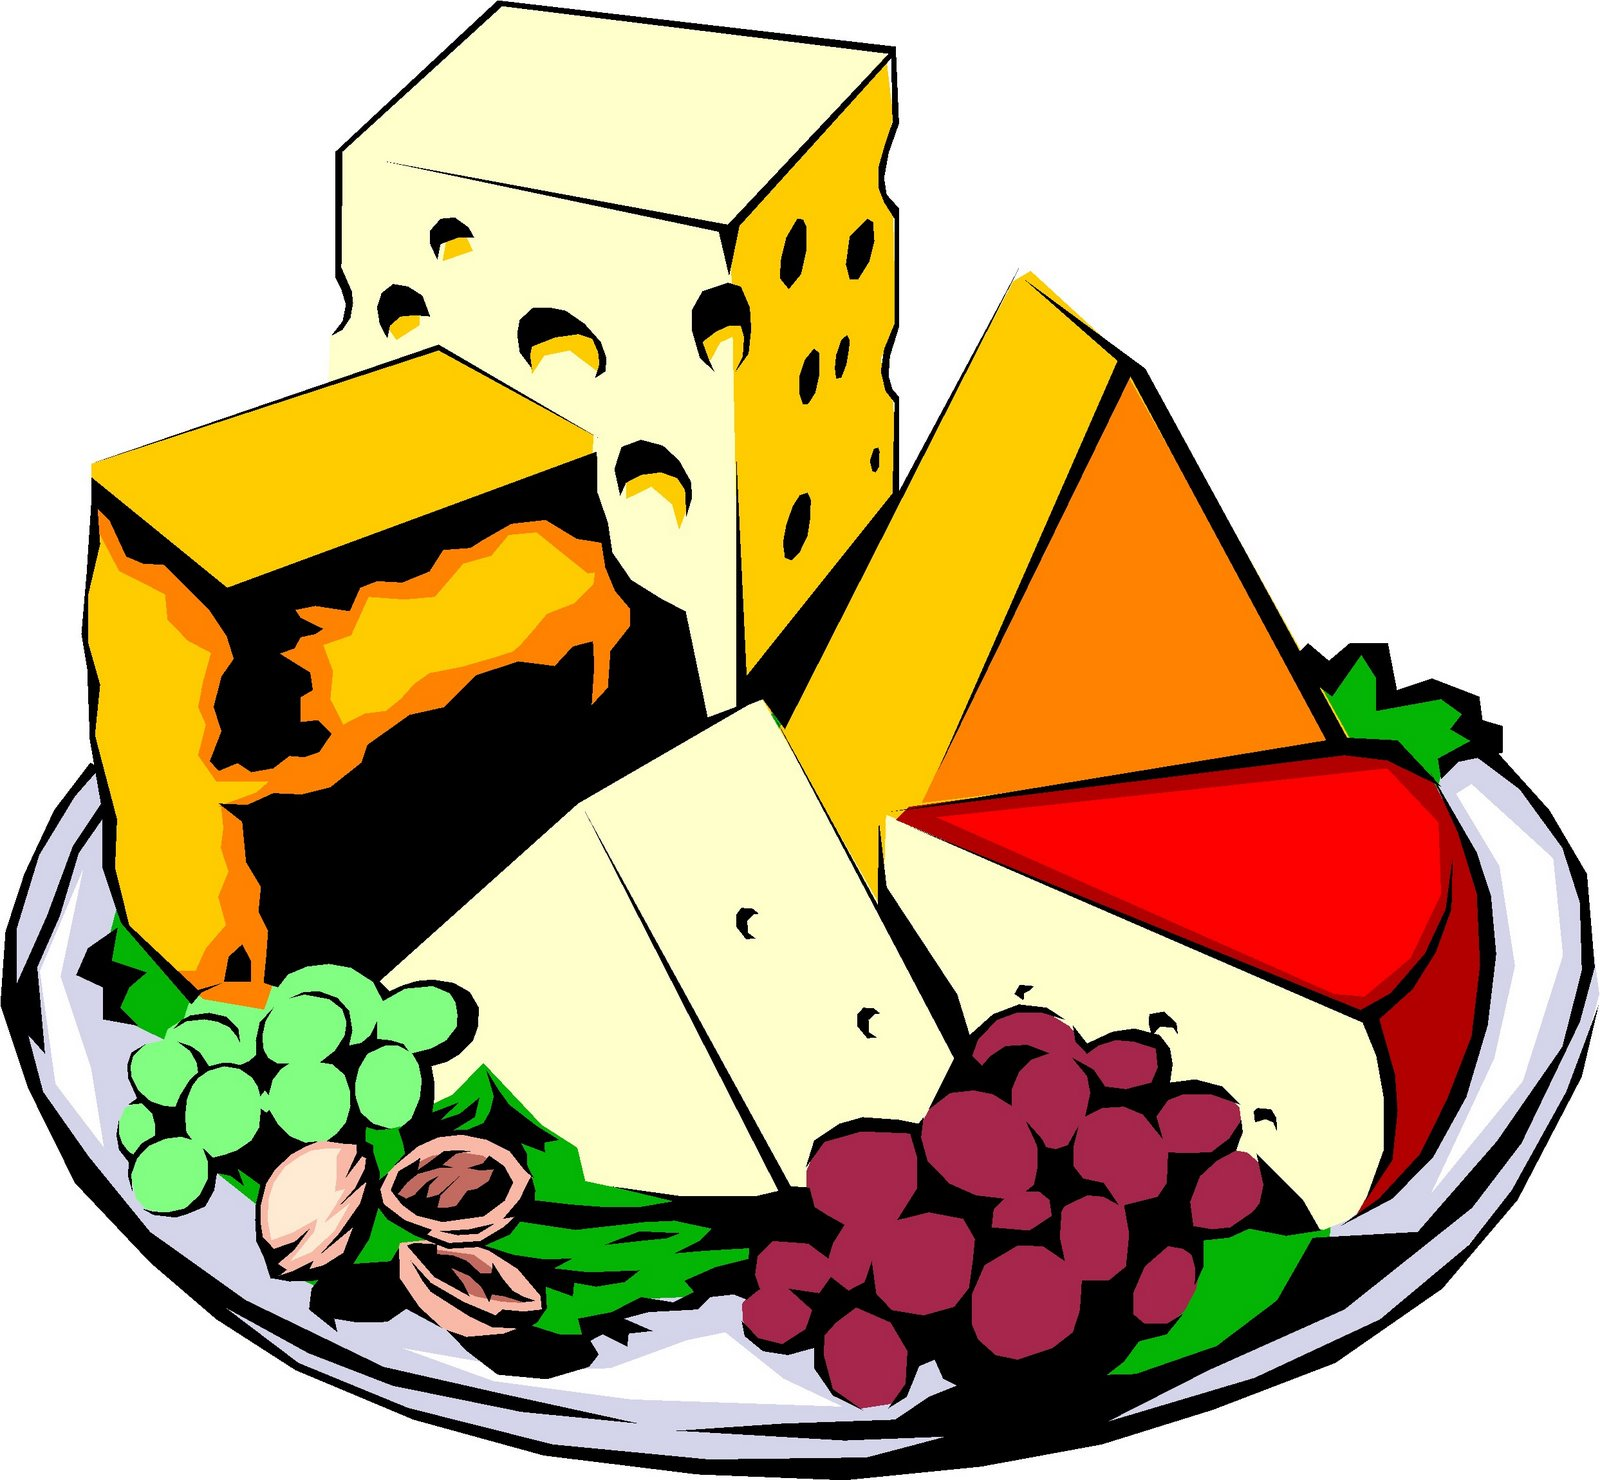 French cheese clipart - Clipground